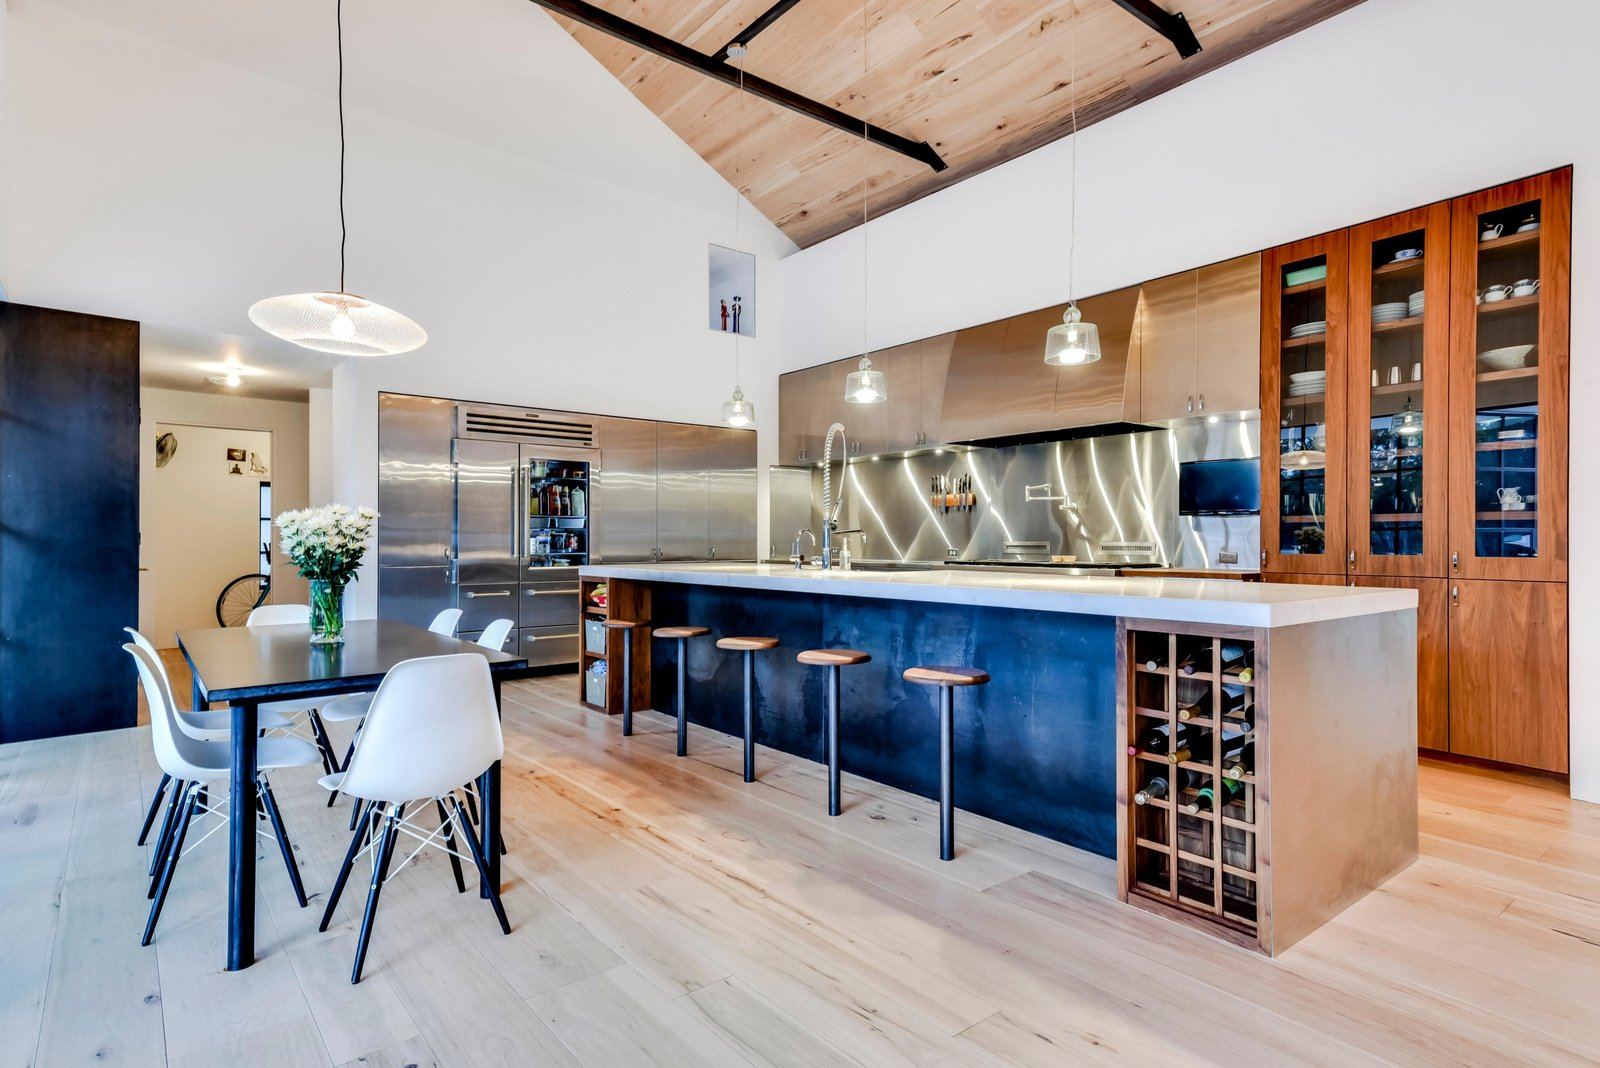 Kitchen, Medium Hardwood, Range Hood, Wall Oven, Drop In, Metal, Metal, Range, Wood, Pendant, Refrigerator, and Beverage Center The kitchen and dining area from the other angle.  Kitchen Metal Range Hood Metal Photos from Own This Alluring Sculptural Abode in Austin For $3.1M